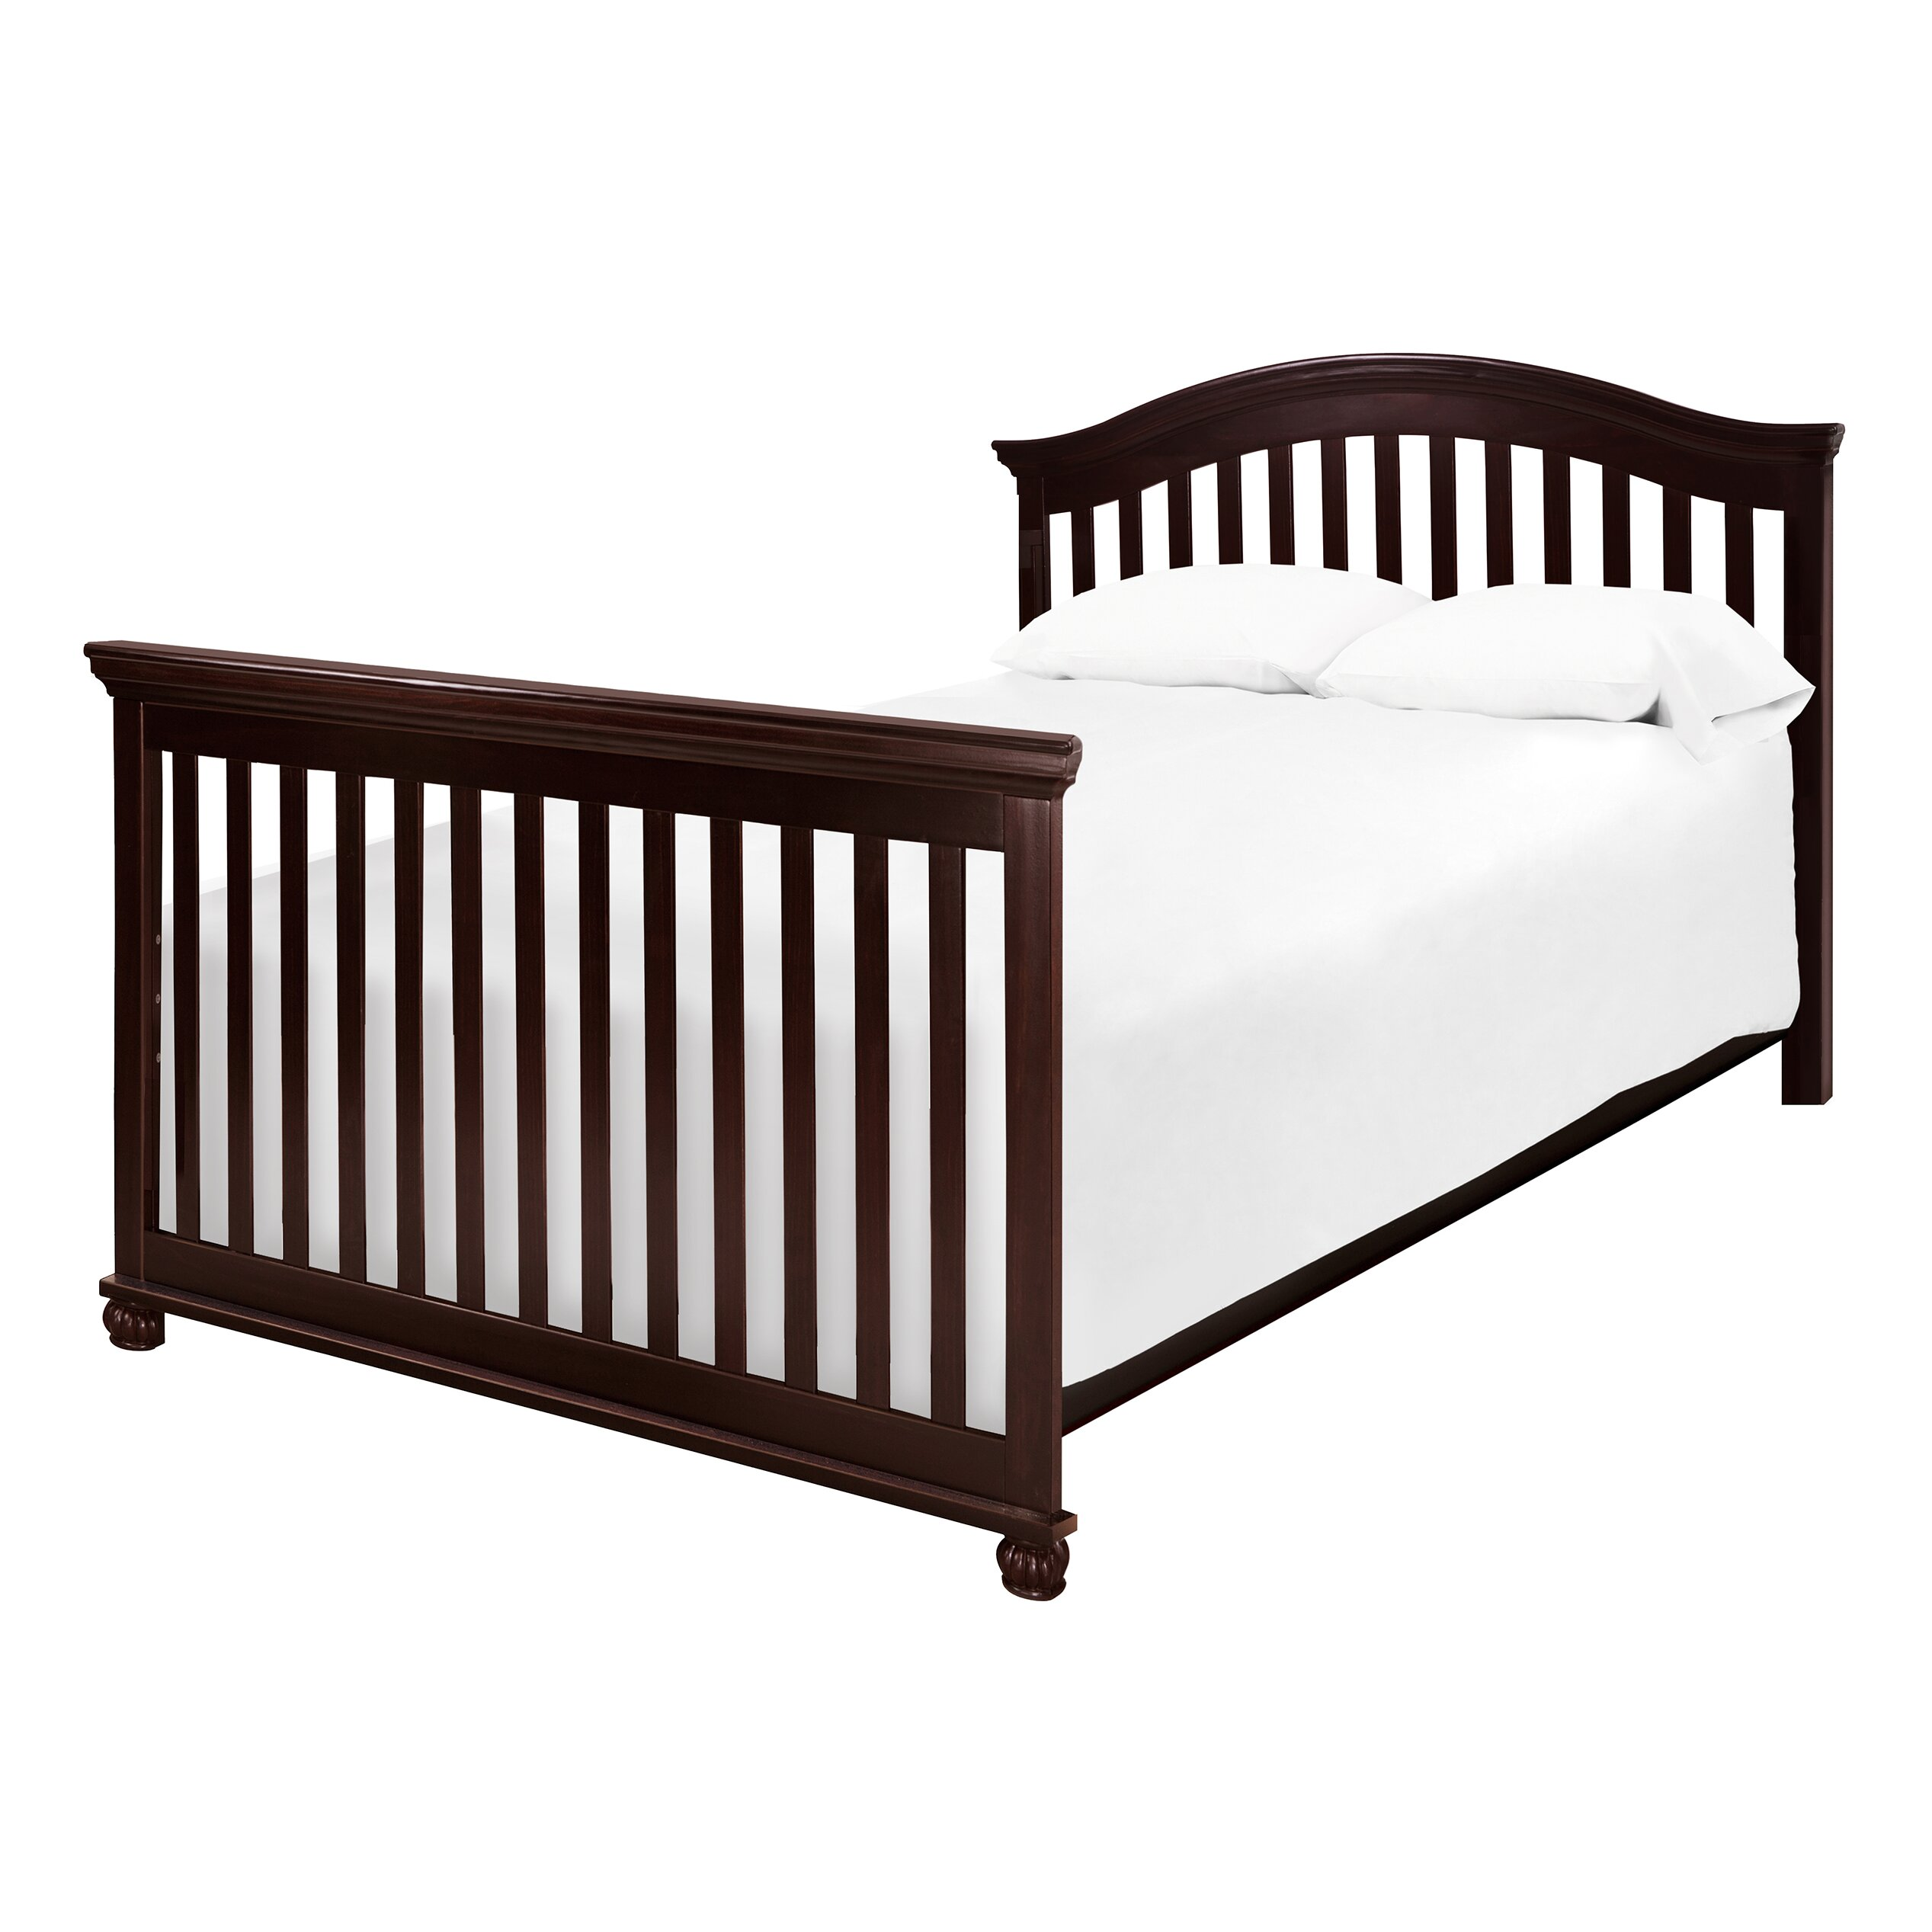 davinci sherwood 4 in 1 convertible crib wayfair